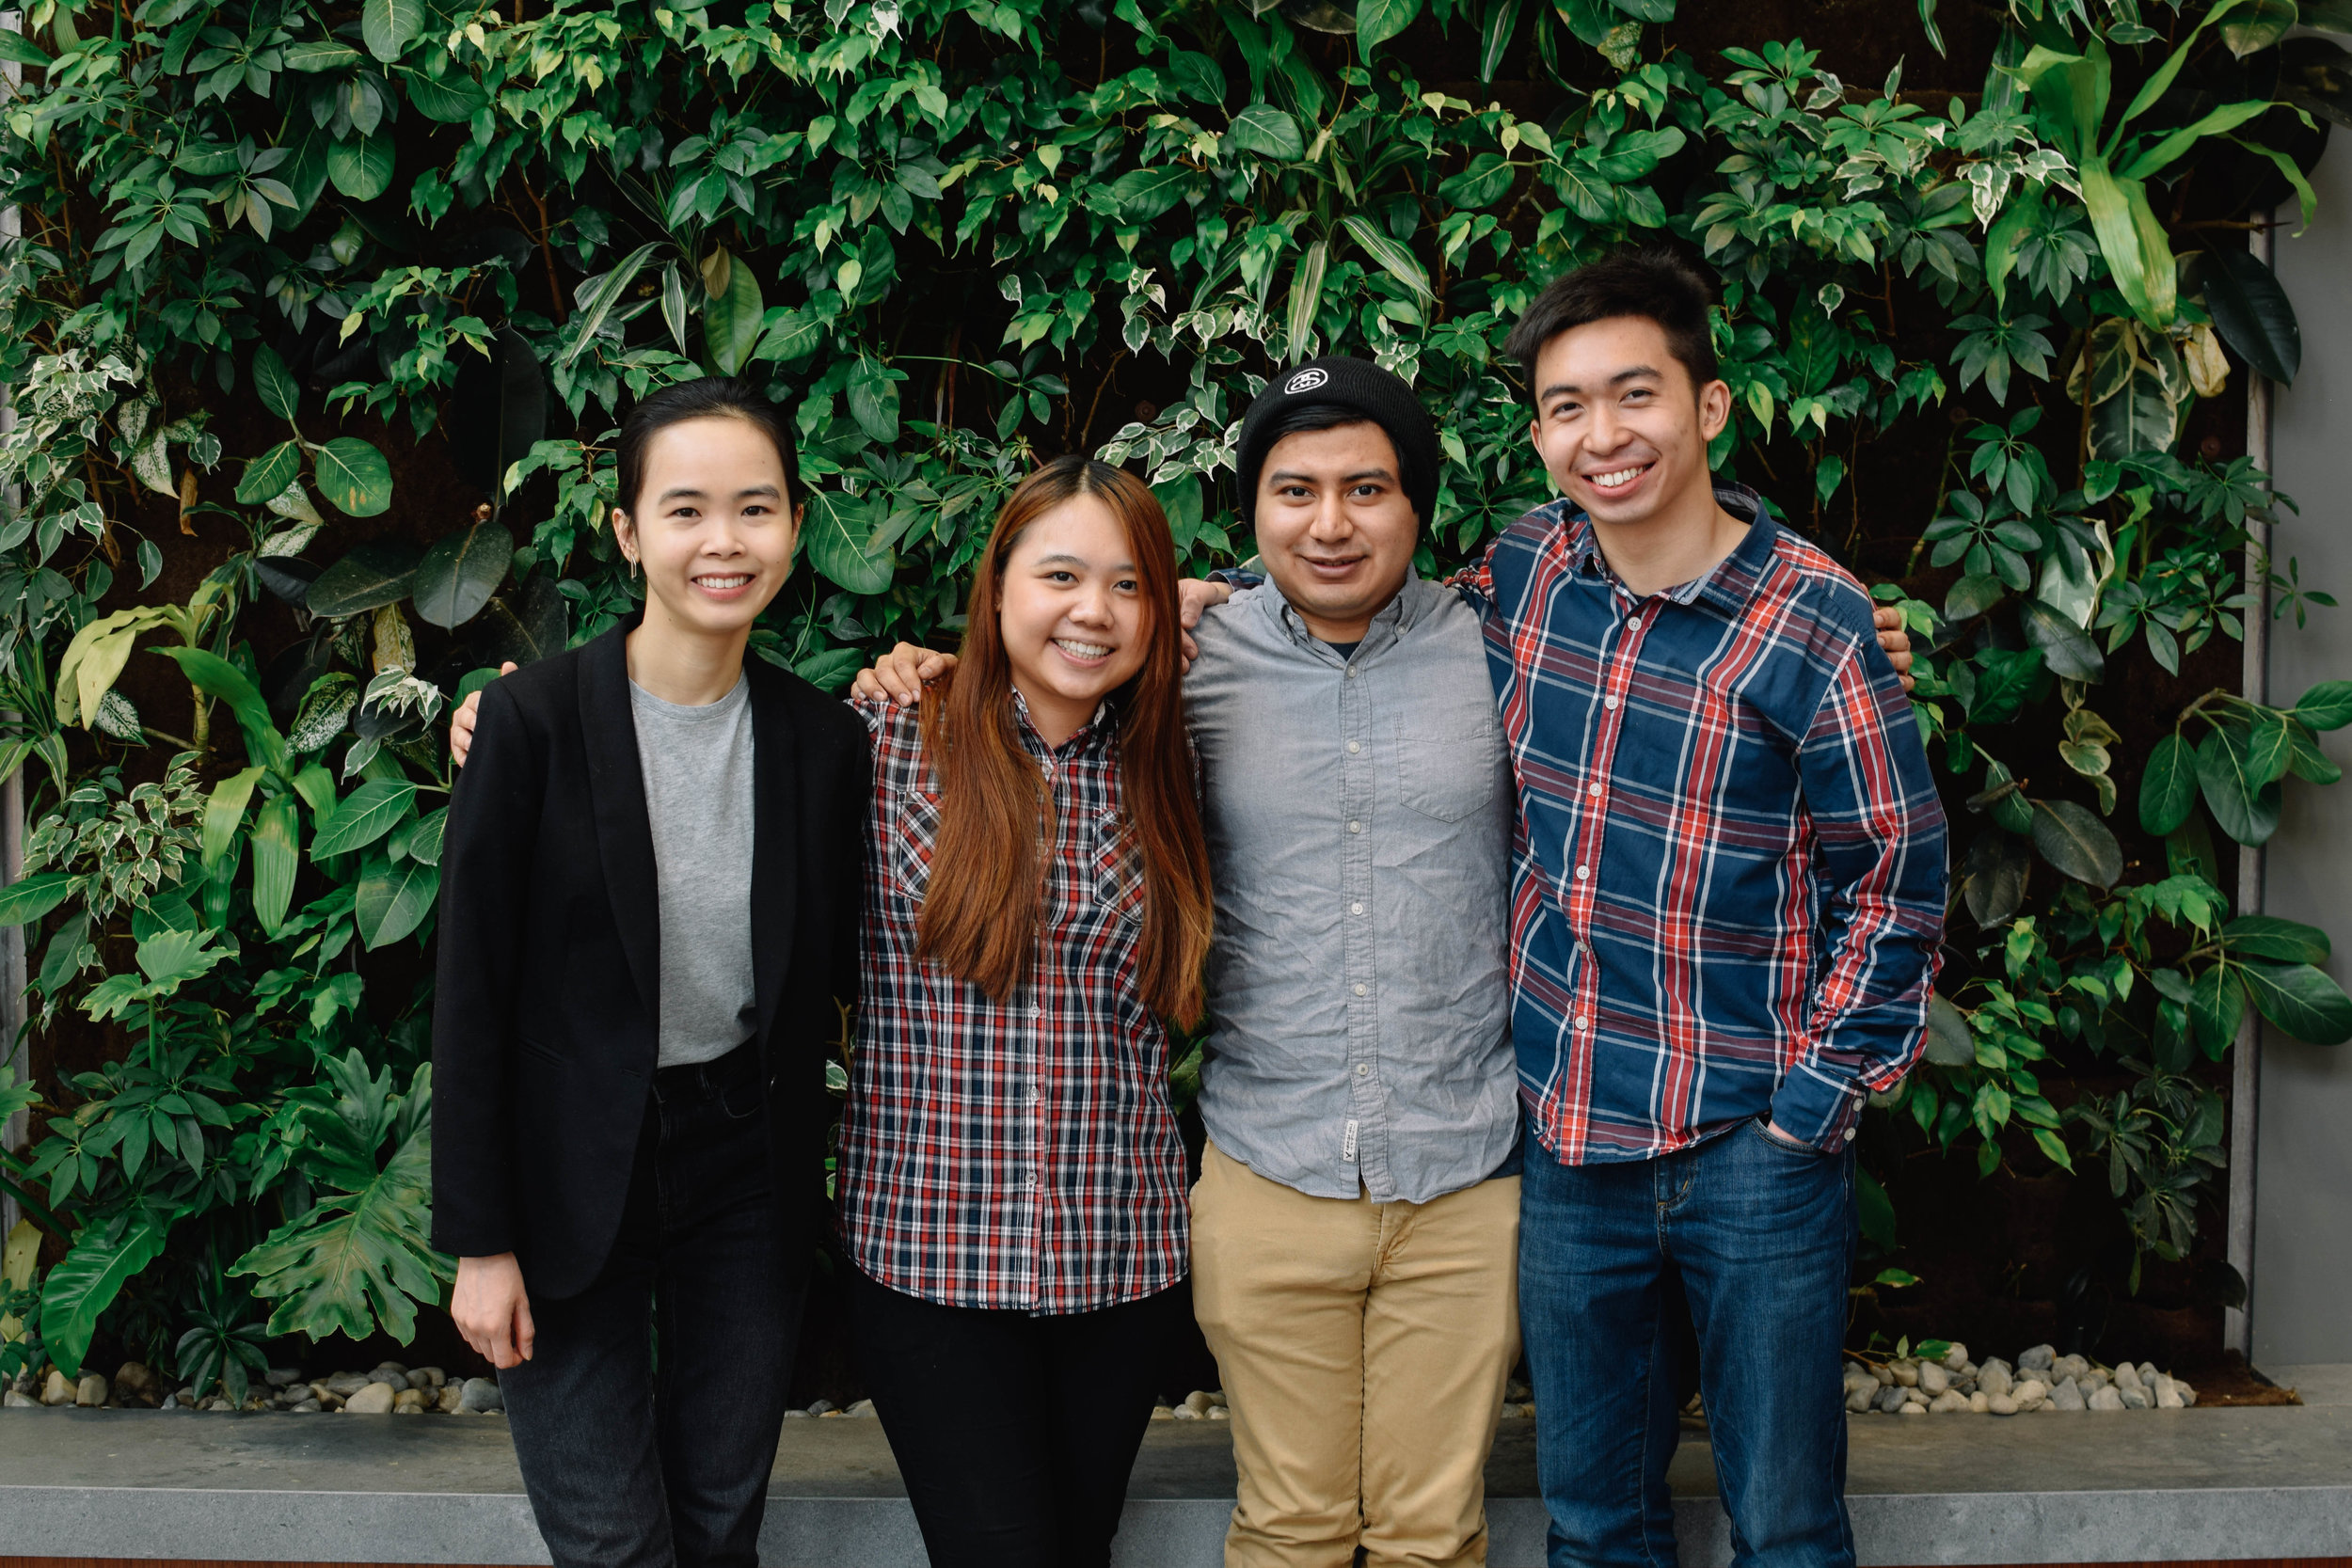 Peerstachio - Improving academic performance and confidence by connecting peers through an online learning platformCRISTIAN GUILLEN, PATRICK CHONG JIN HUA, SCARLETT ONG RUI CHEM, HUYEN PHAN